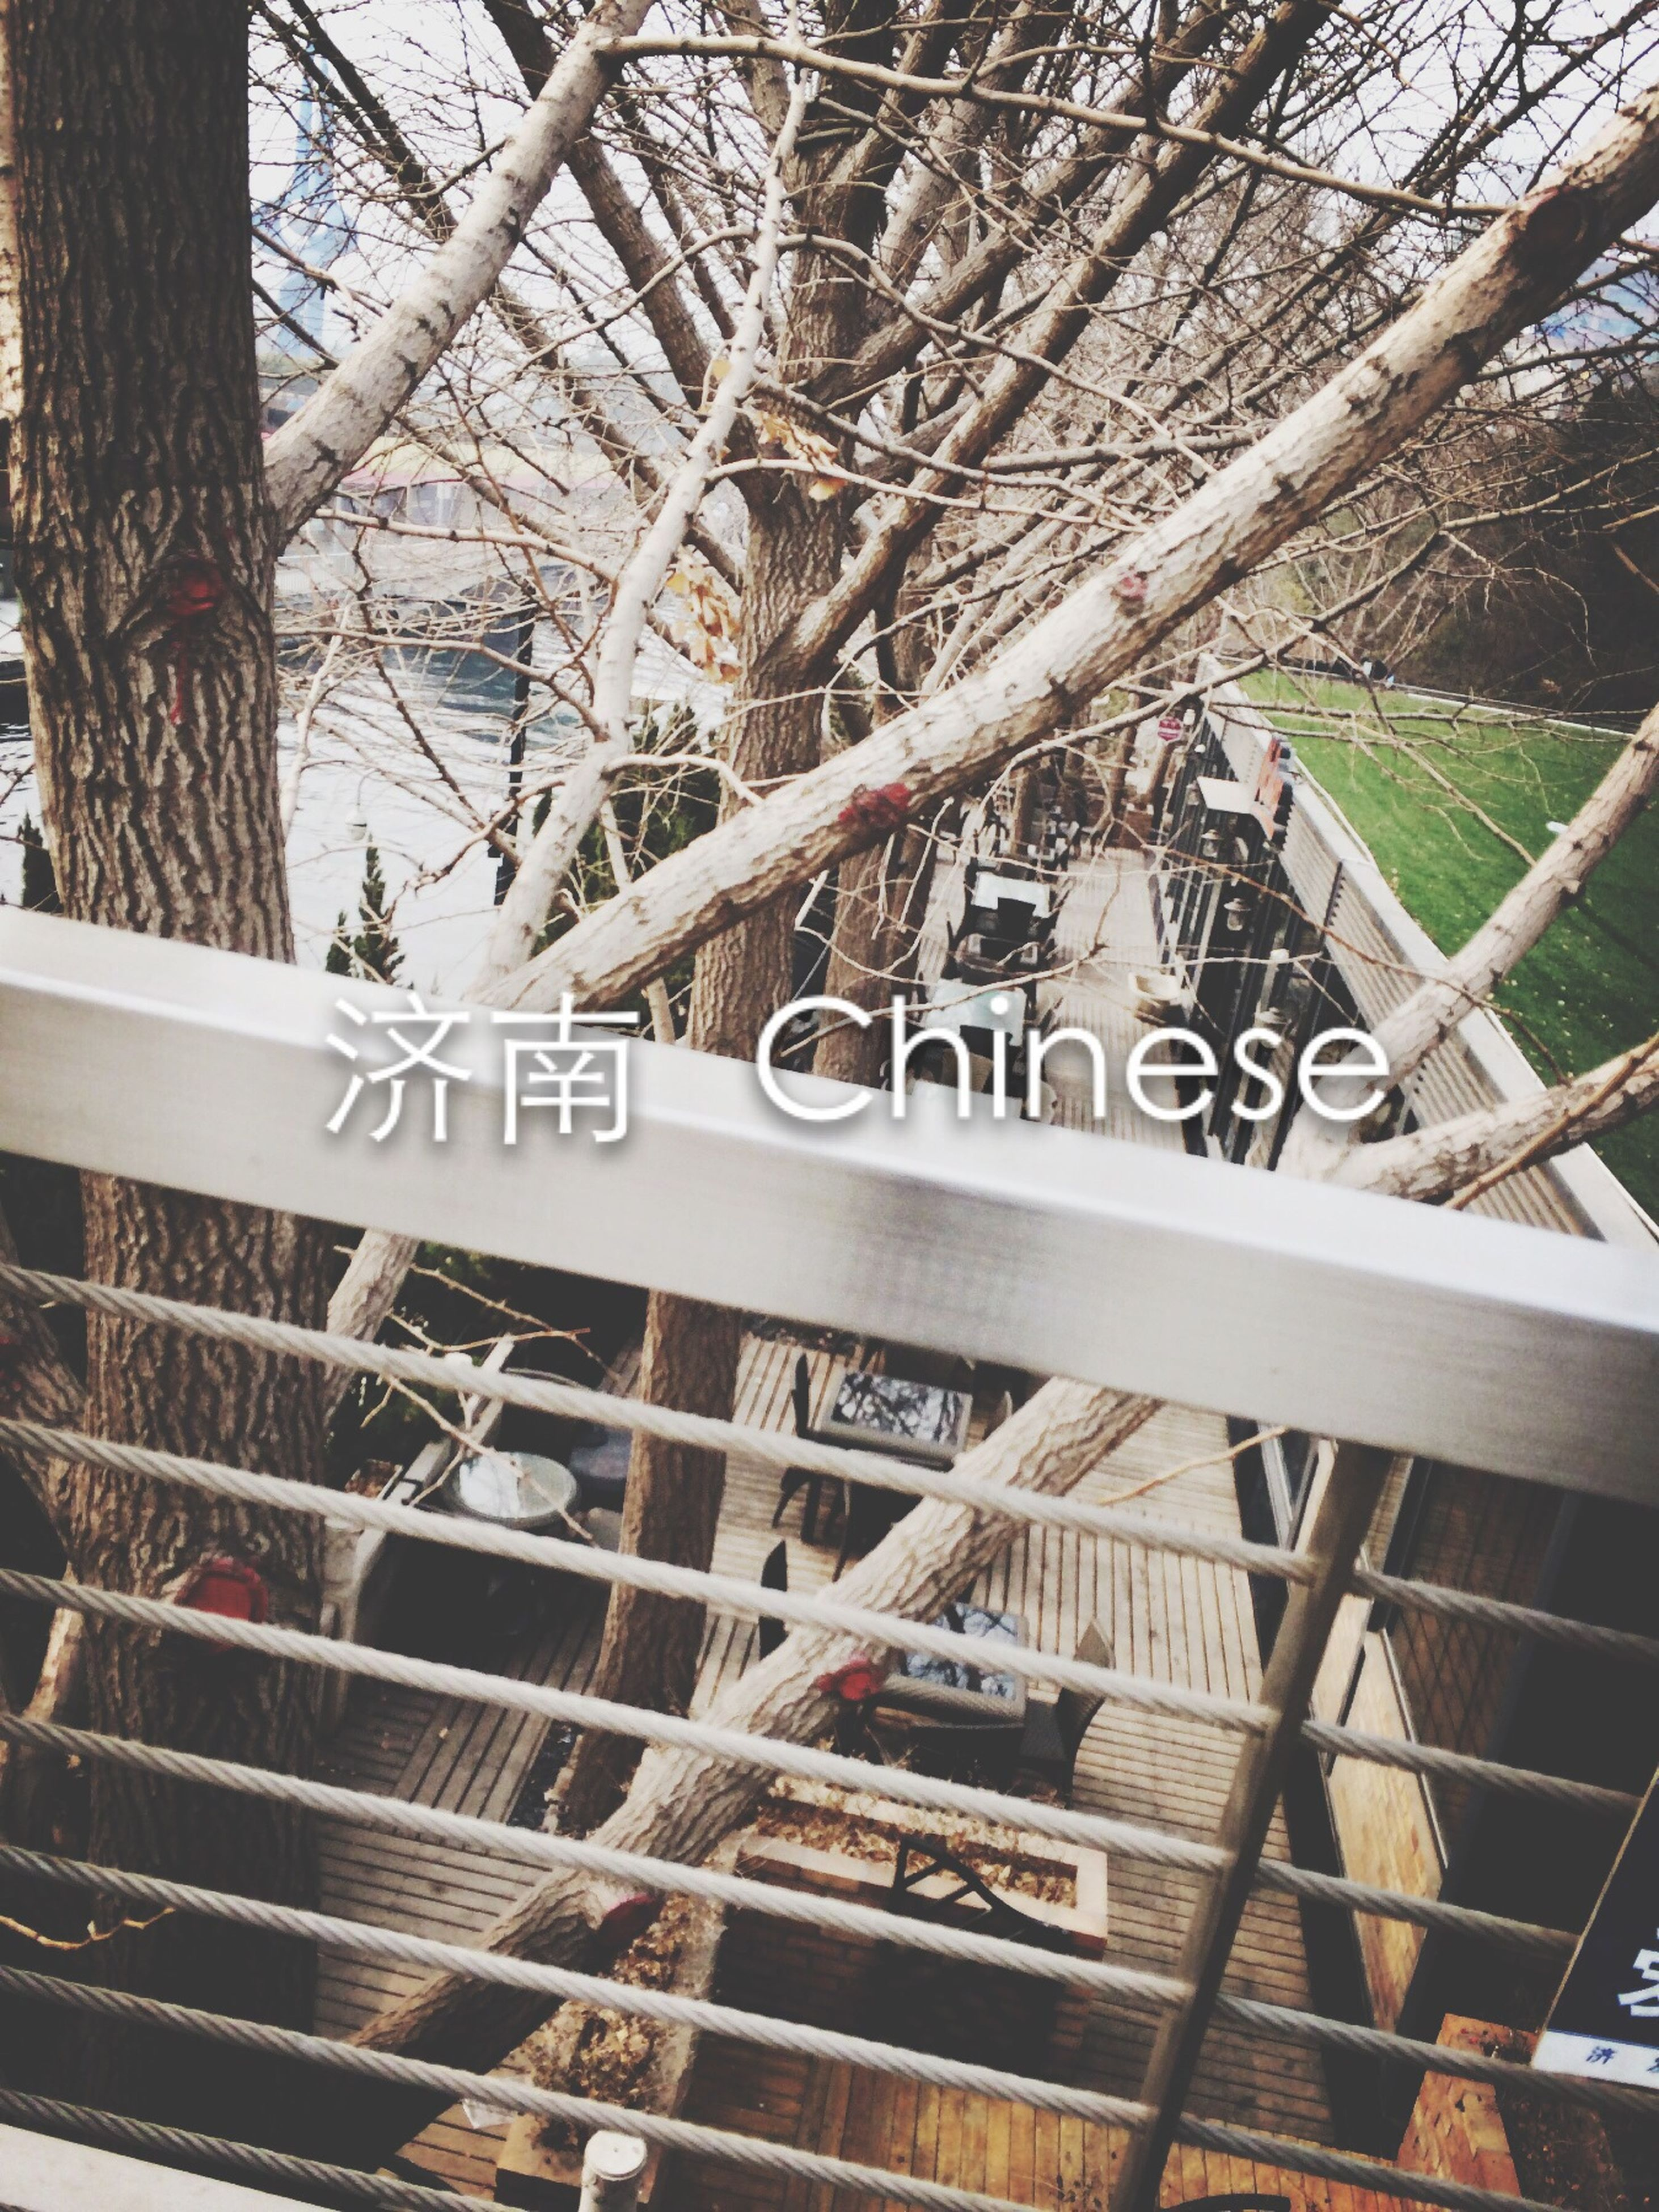 architecture, built structure, tree, building exterior, railing, city, branch, bare tree, day, building, tree trunk, text, outdoors, steps, no people, low angle view, residential building, steps and staircases, fence, staircase